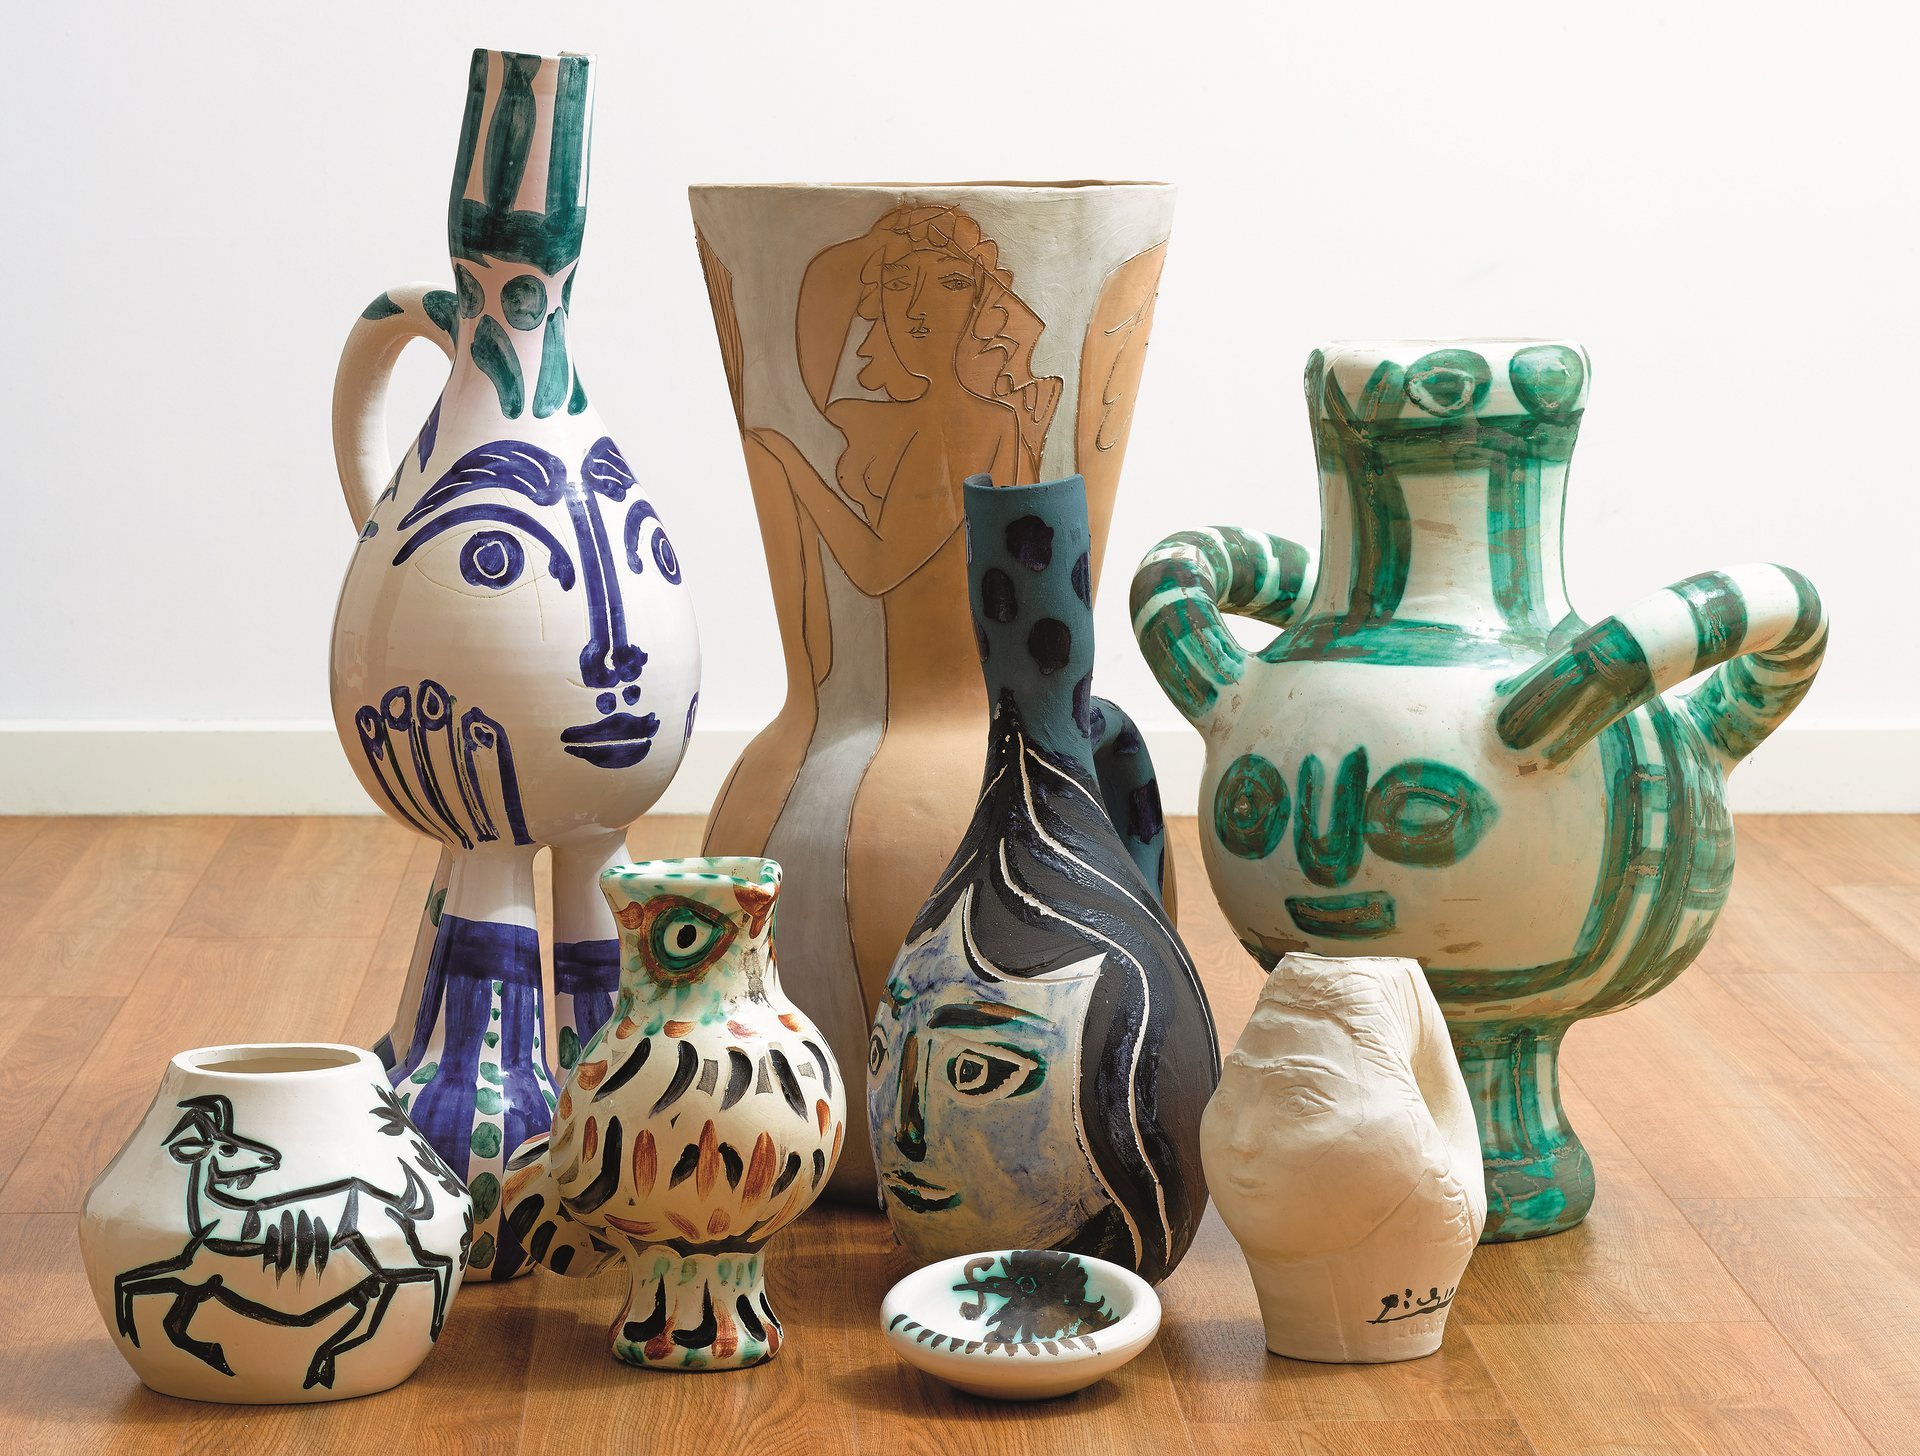 sothebys-picasso-ceramics-lord-lady-attenborough-collection-overview